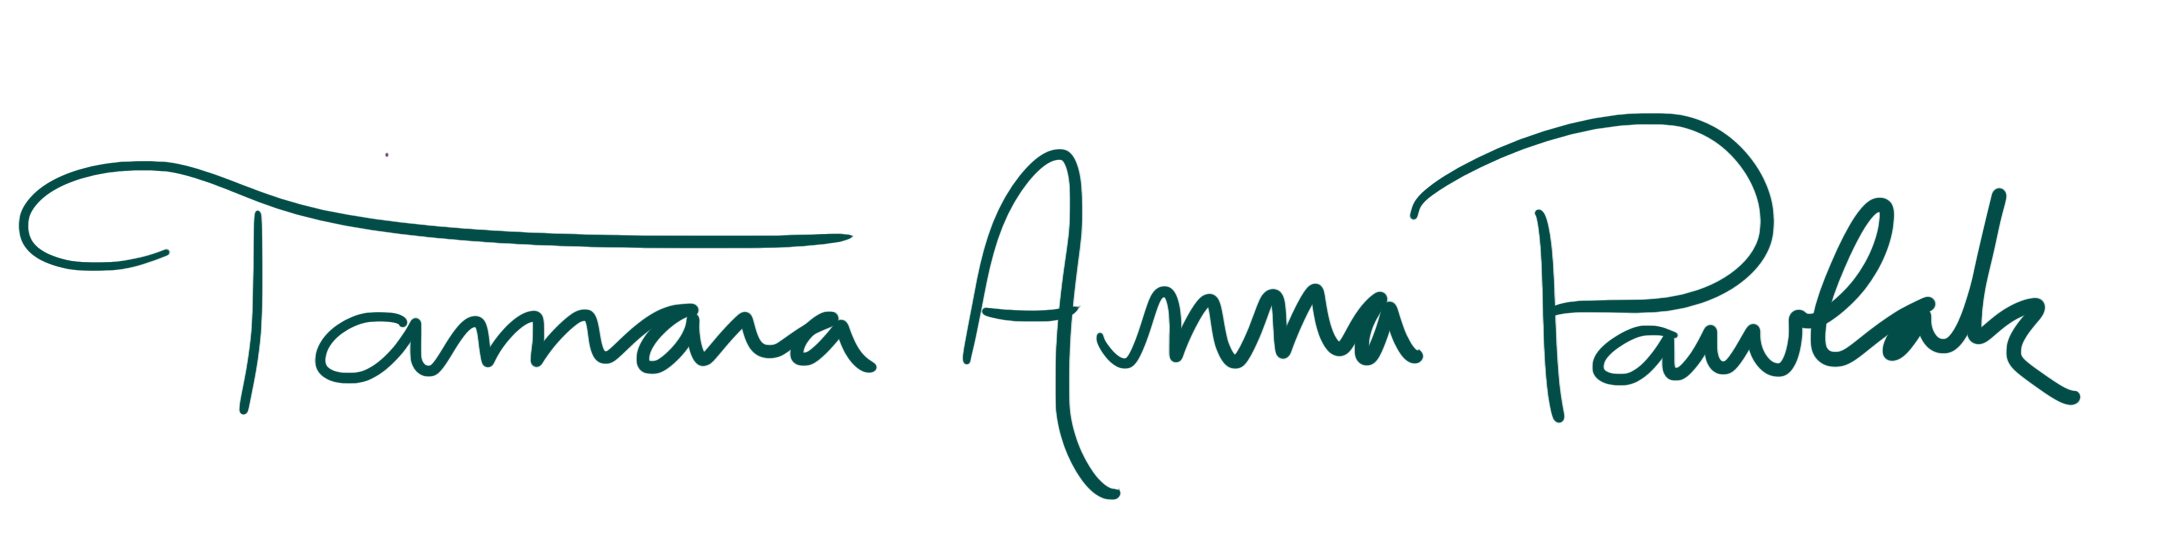 Signature of Tamara Anna Pawlak